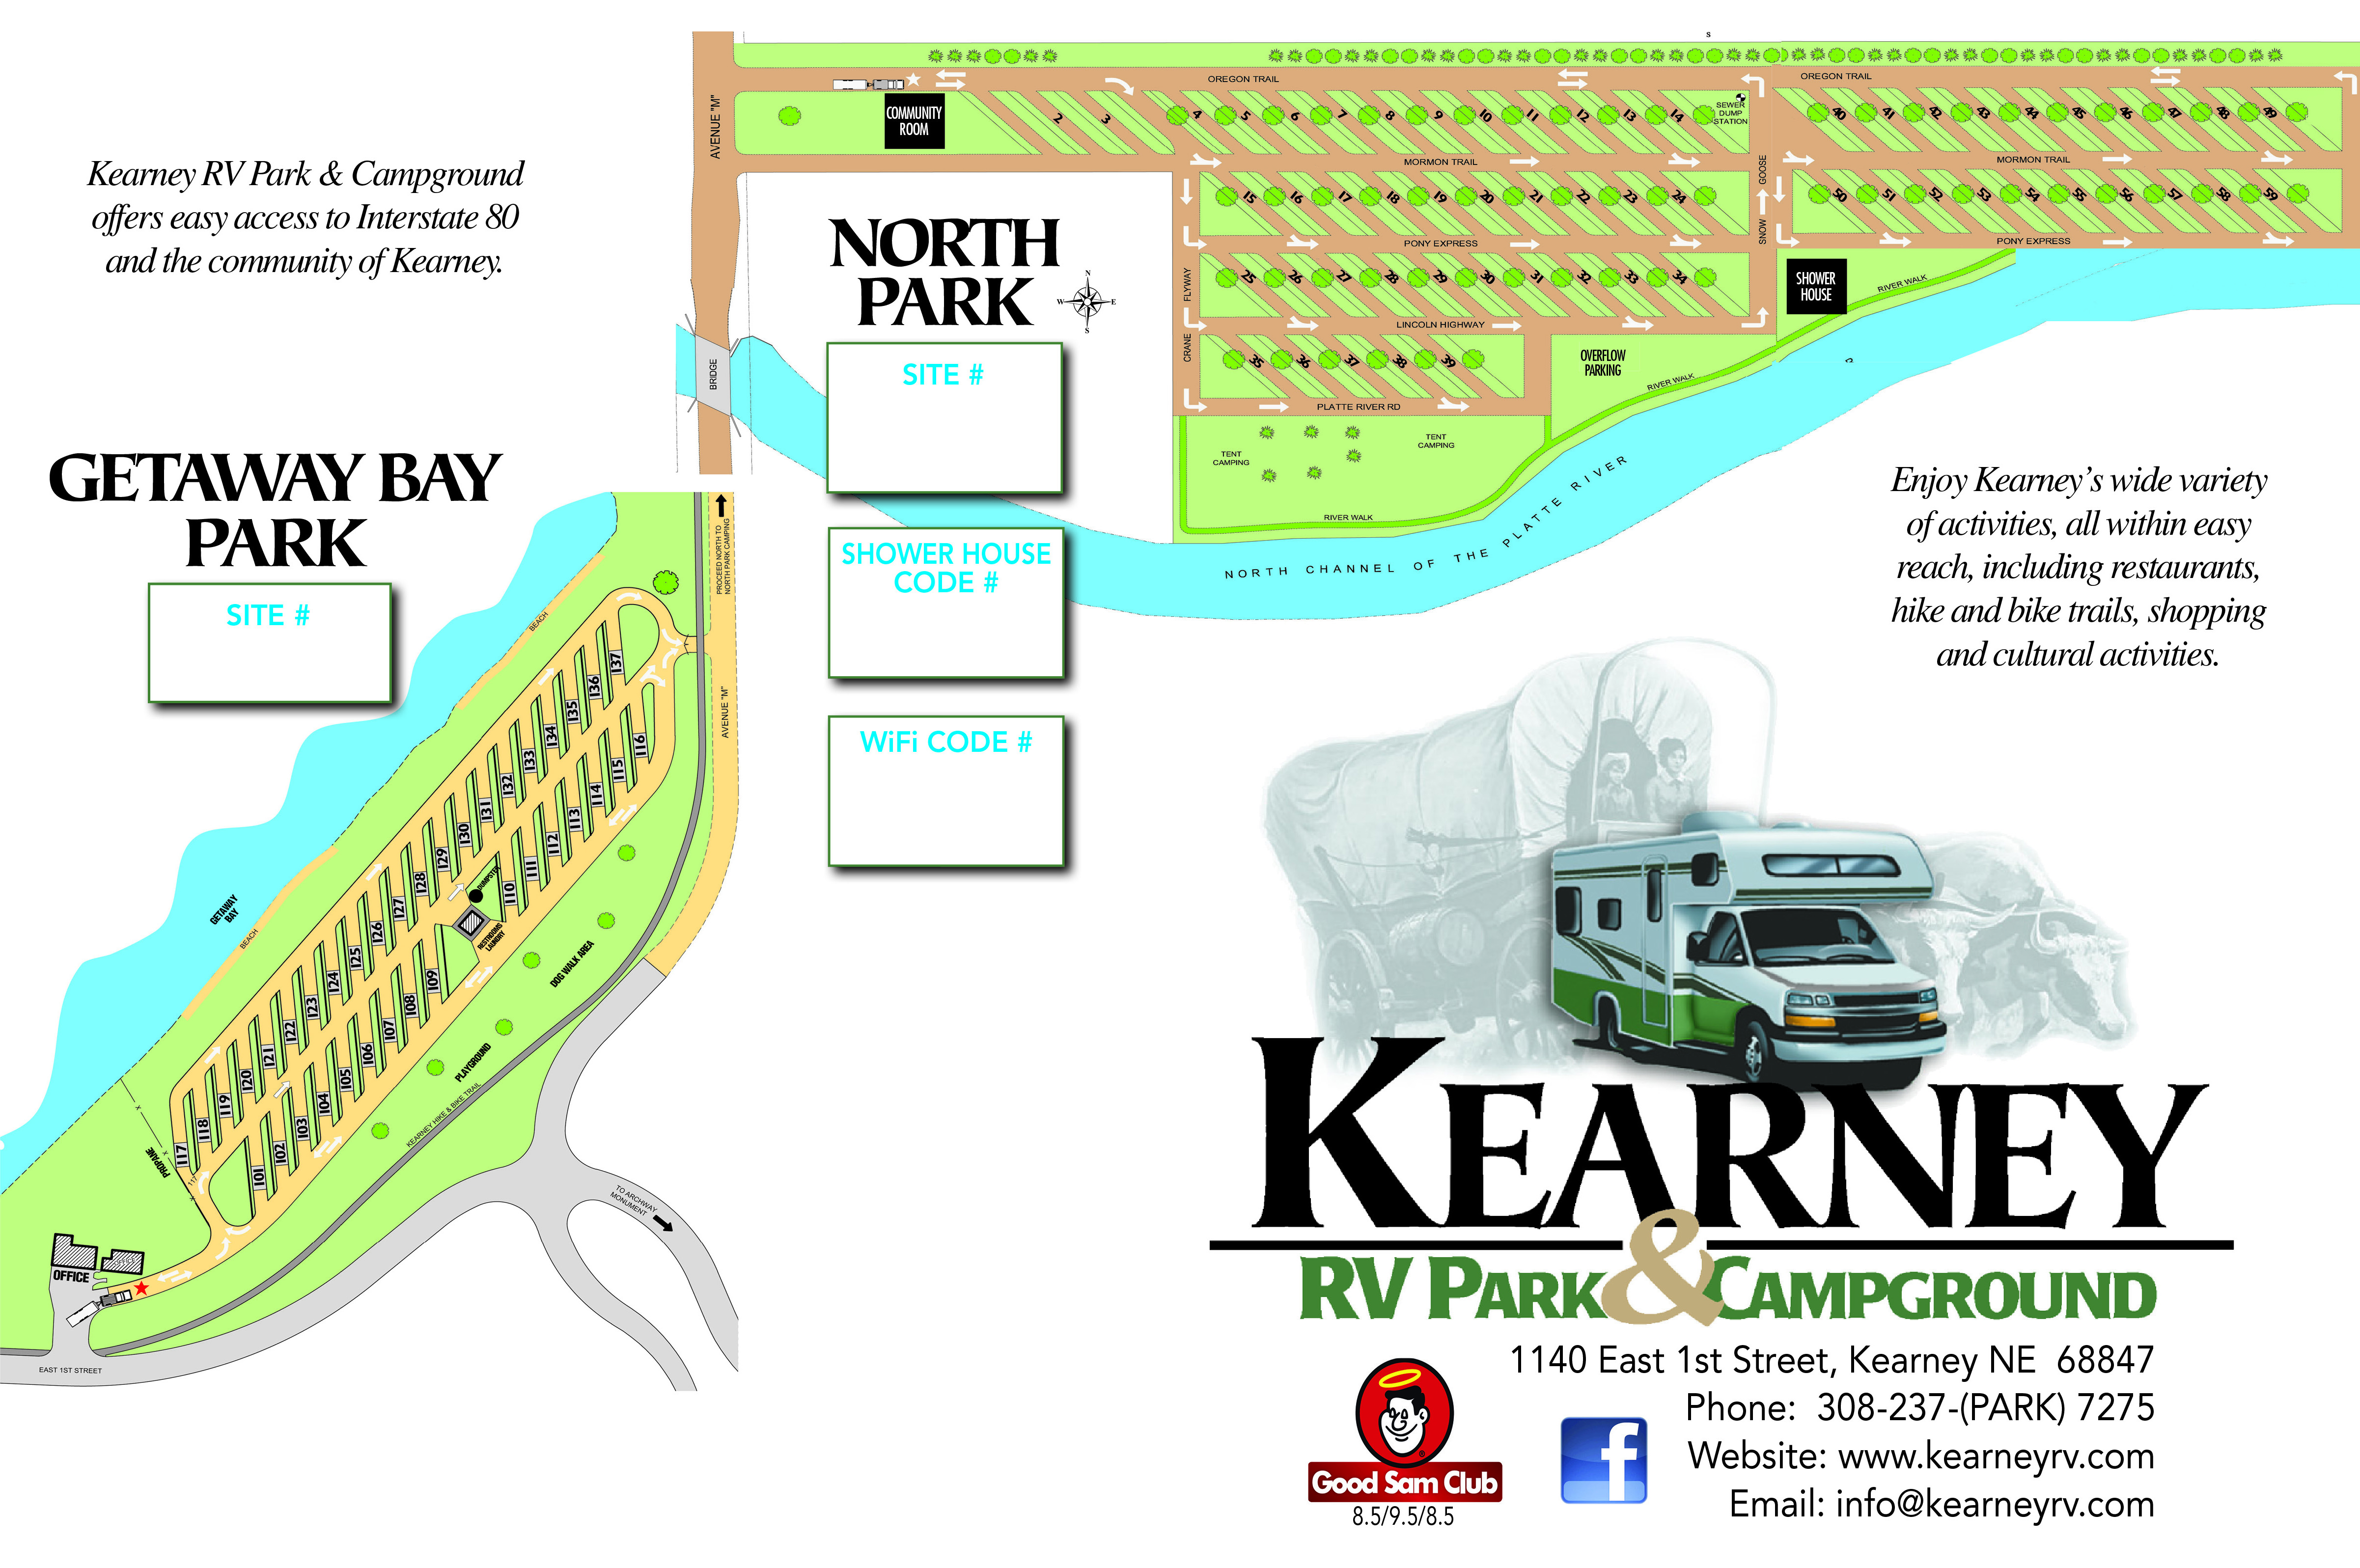 Kearney RV Campground